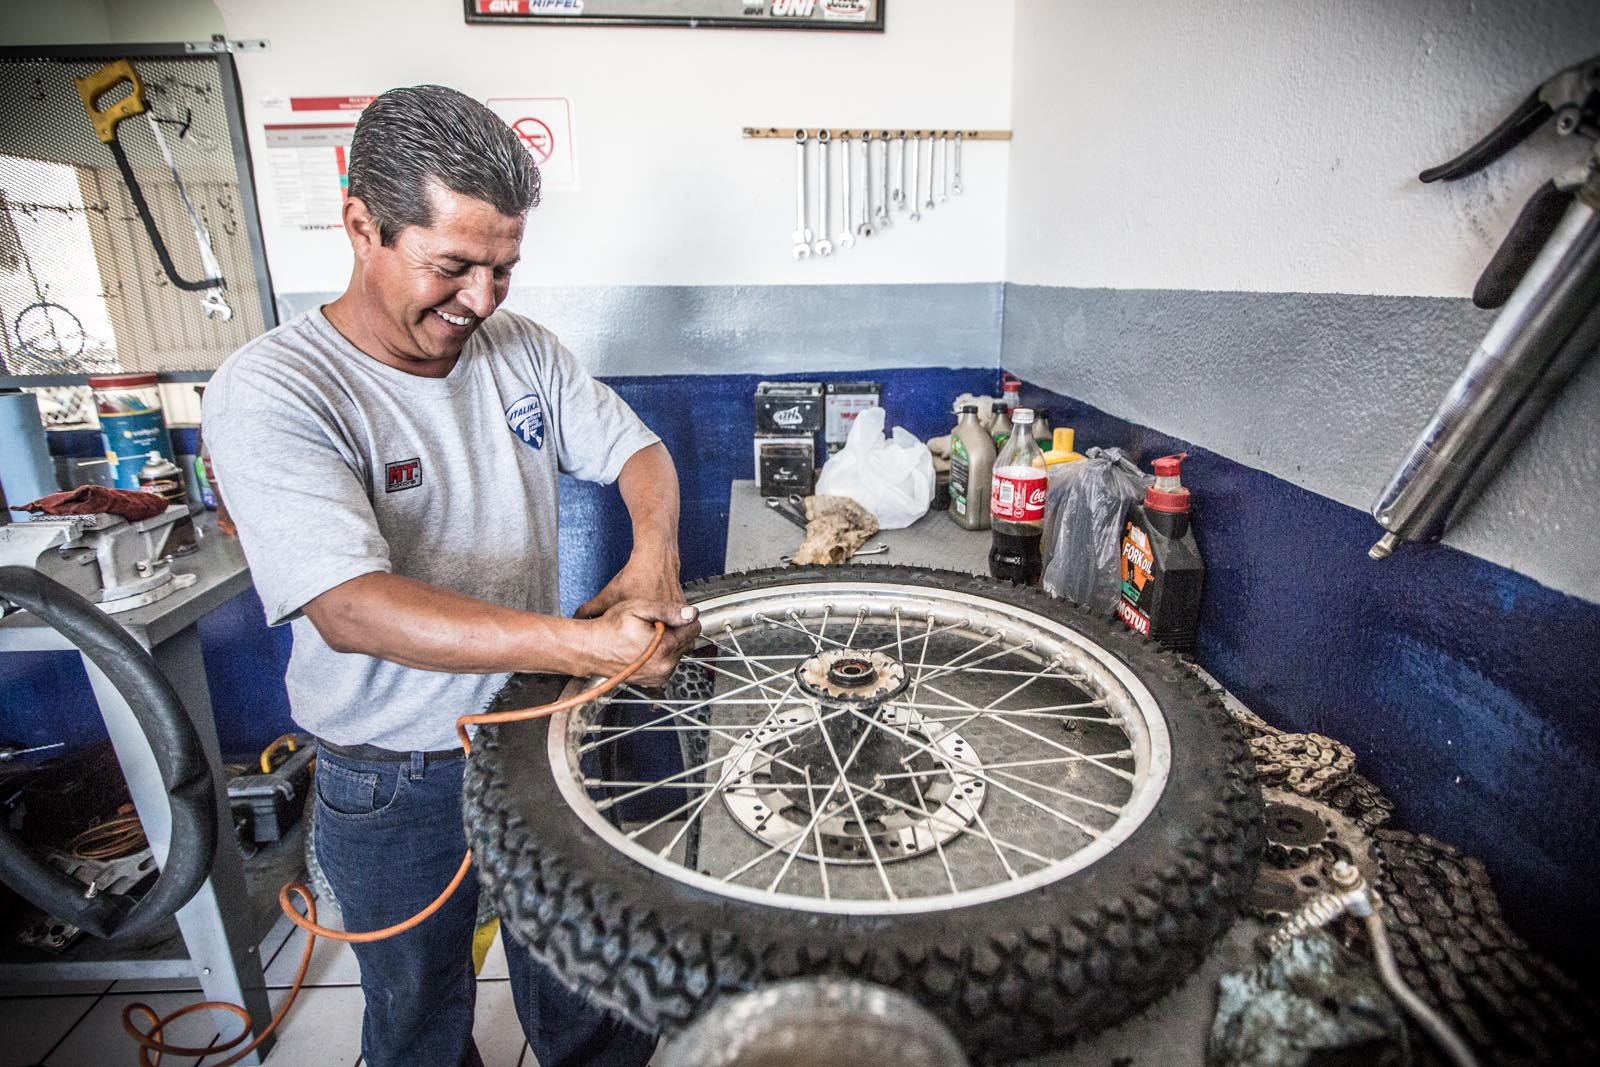 Andrew was not afraid to use Google translator on this guy just to be sure we had a heavy-duty tube inside this new tire was muy importante.